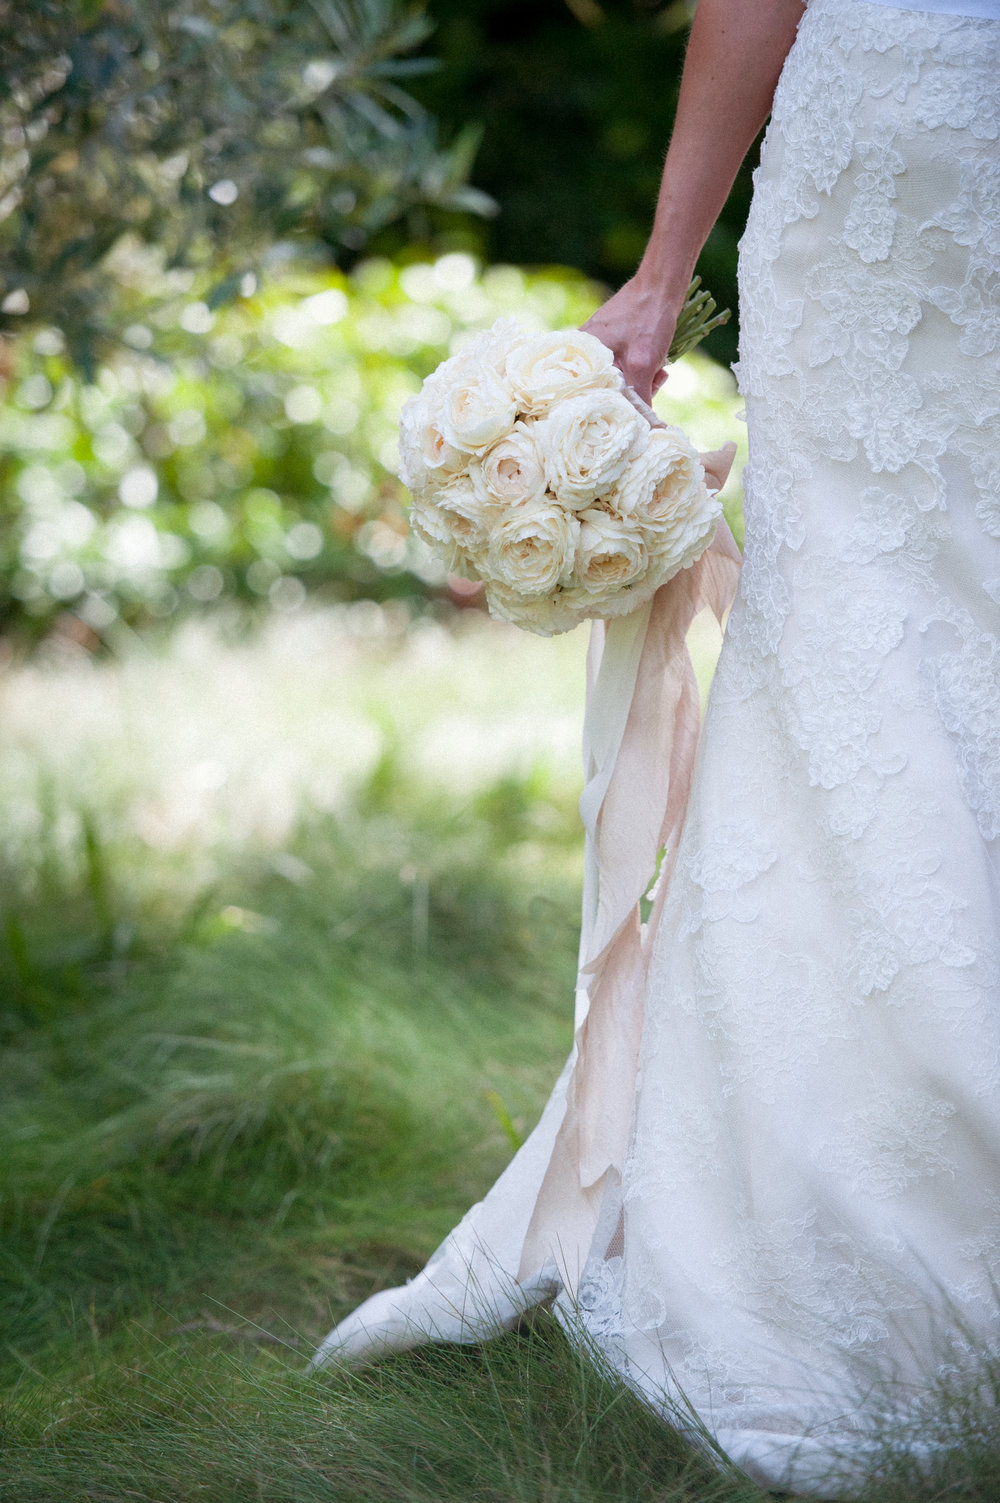 santabarbarawedding.com | Photo: Yvette Roman | Elegant white estate garden wedding